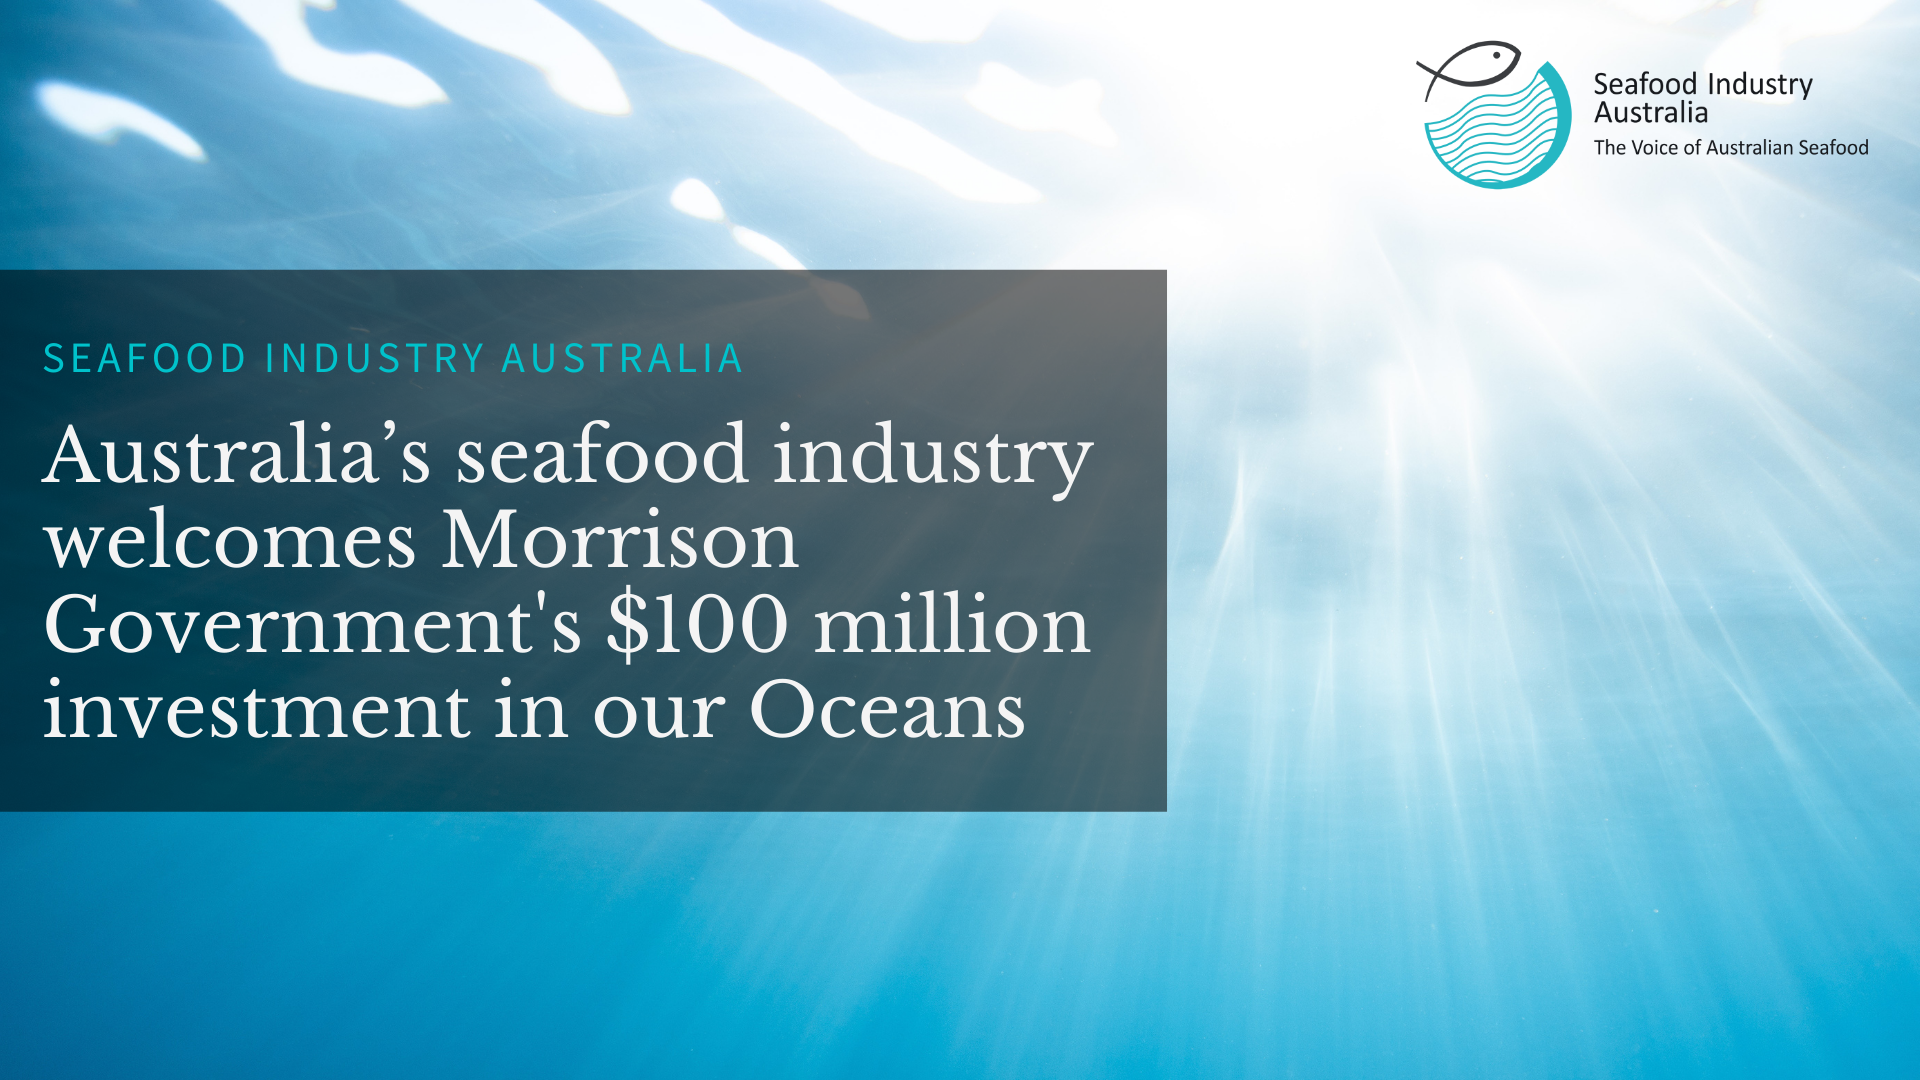 Australia's seafood industry welcomes Morrison Government's $100 million investment in our Oceans